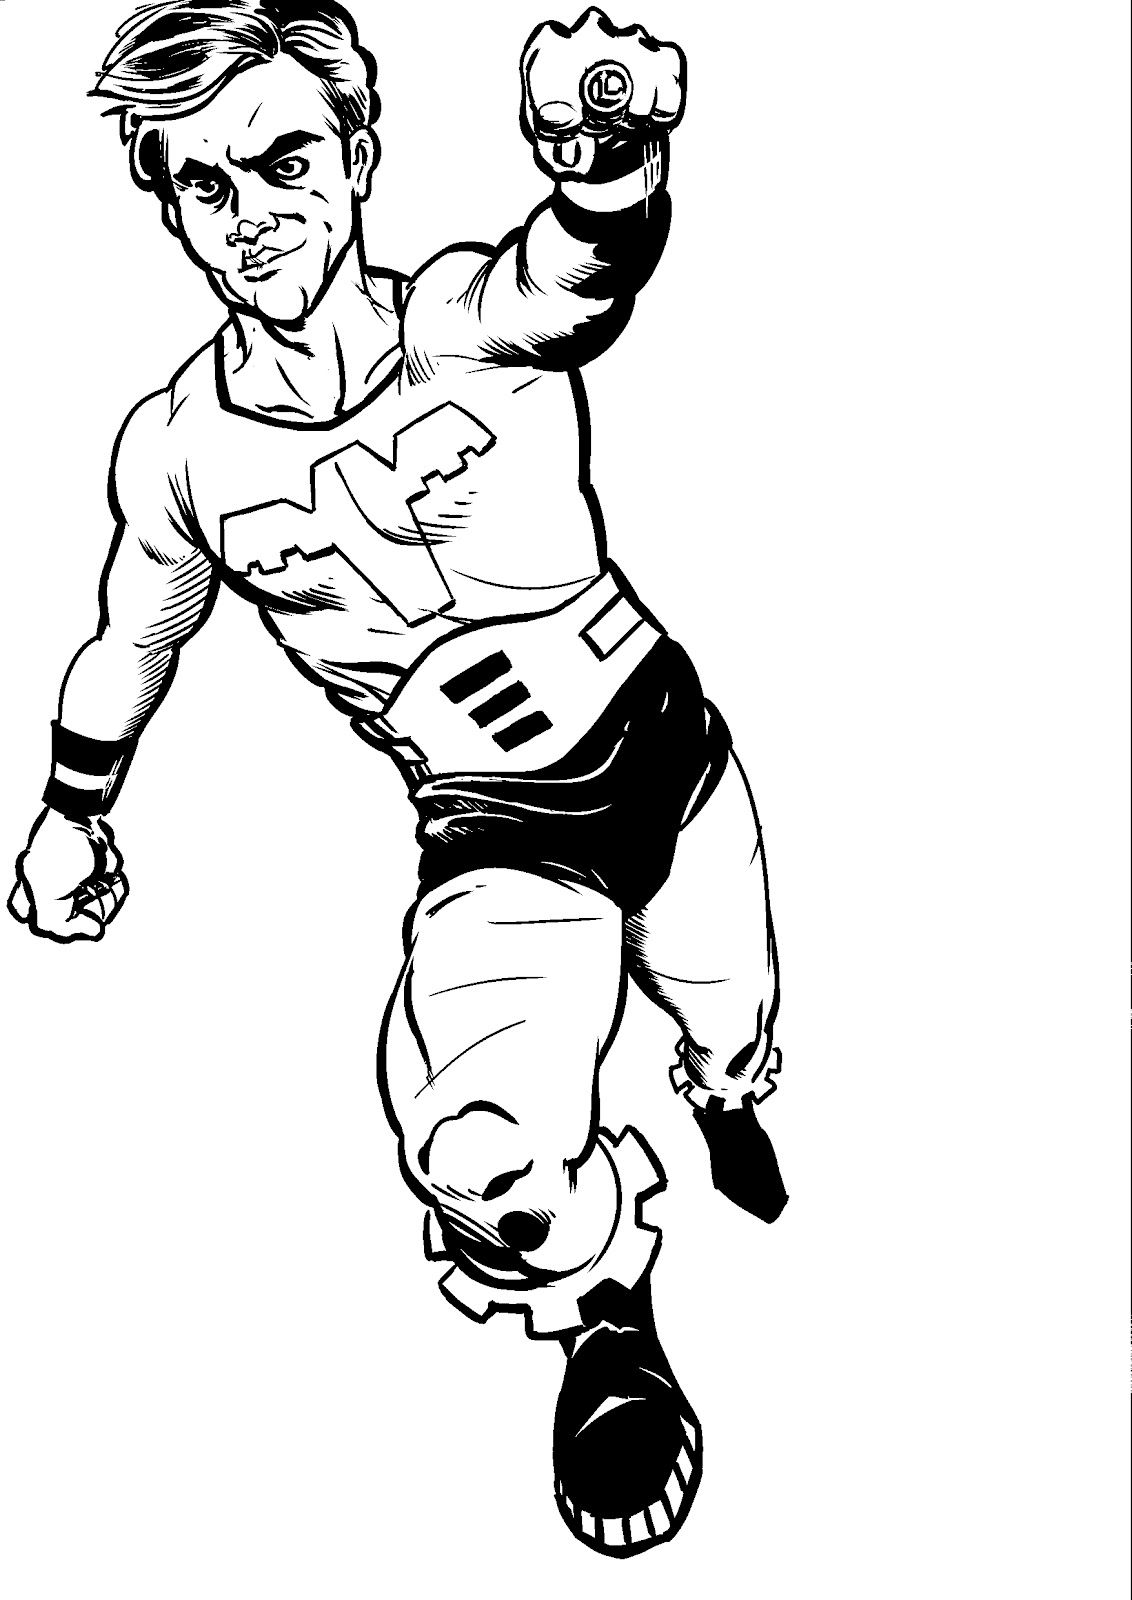 sharkboy and lavagirl coloring pages - photo#12